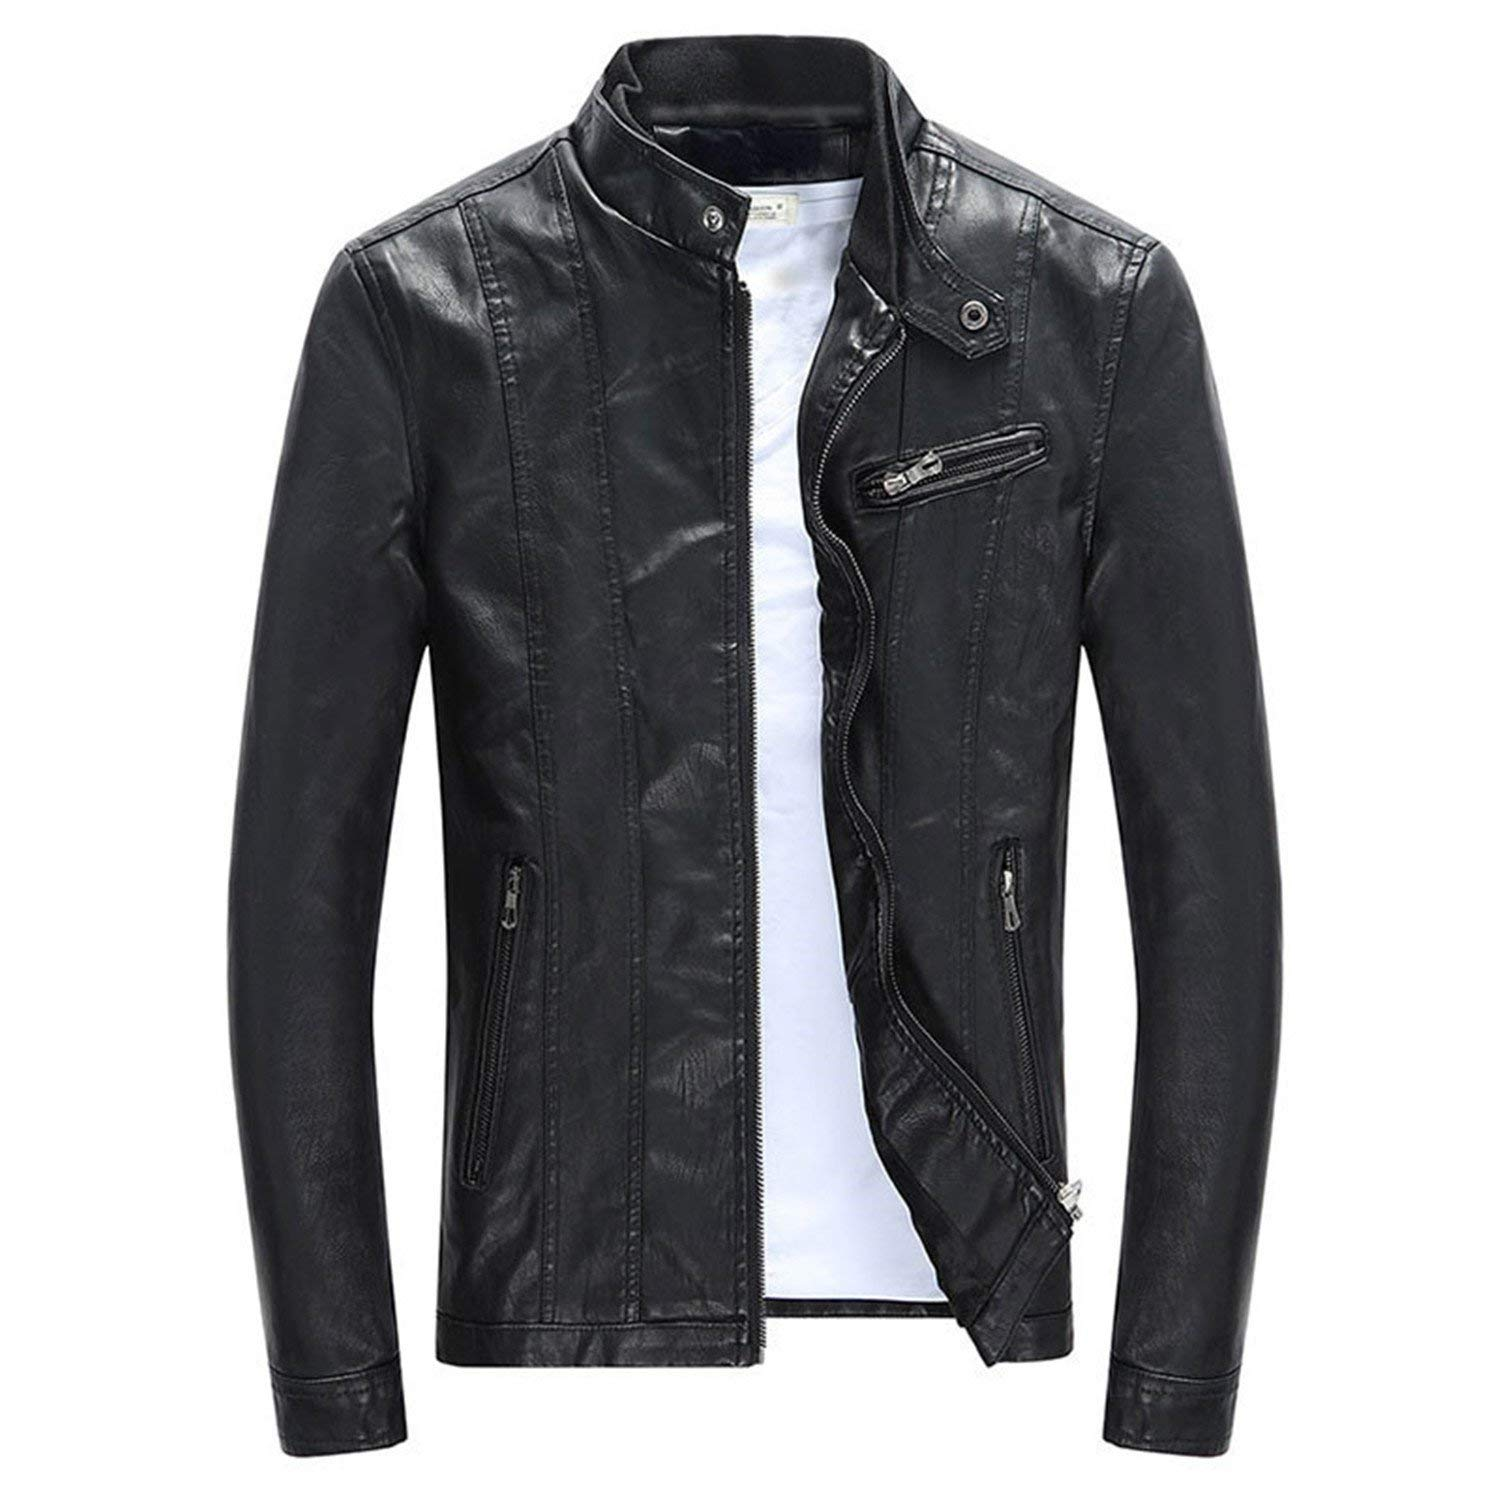 e713542db88 Get Quotations · Joseph Papa Men's PU Jackets Coats Motorcycle Leather  Jackets Men Autumn Spring Leather Clothing Male Casual